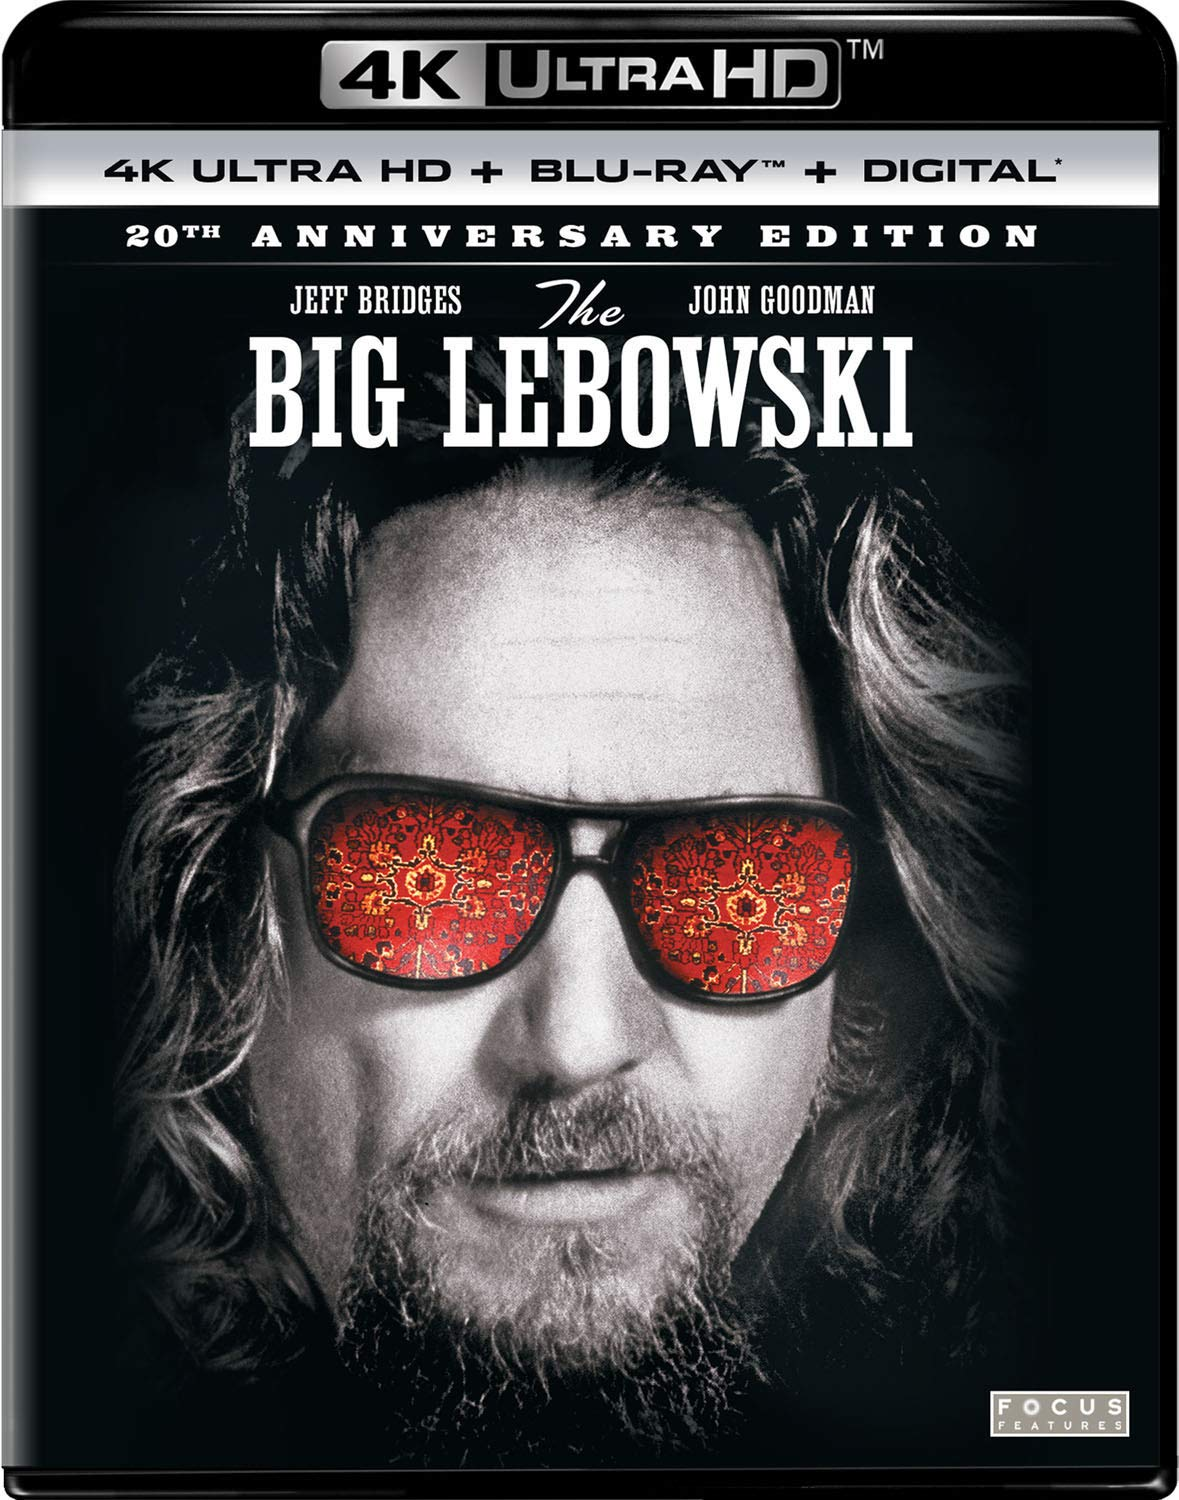 4K Blu-ray : The Big Lebowski (20th Anniversary Edition) (With Blu-ray, 4K Mastering, Anniversary Edition, Digital Copy, 2 Pack)